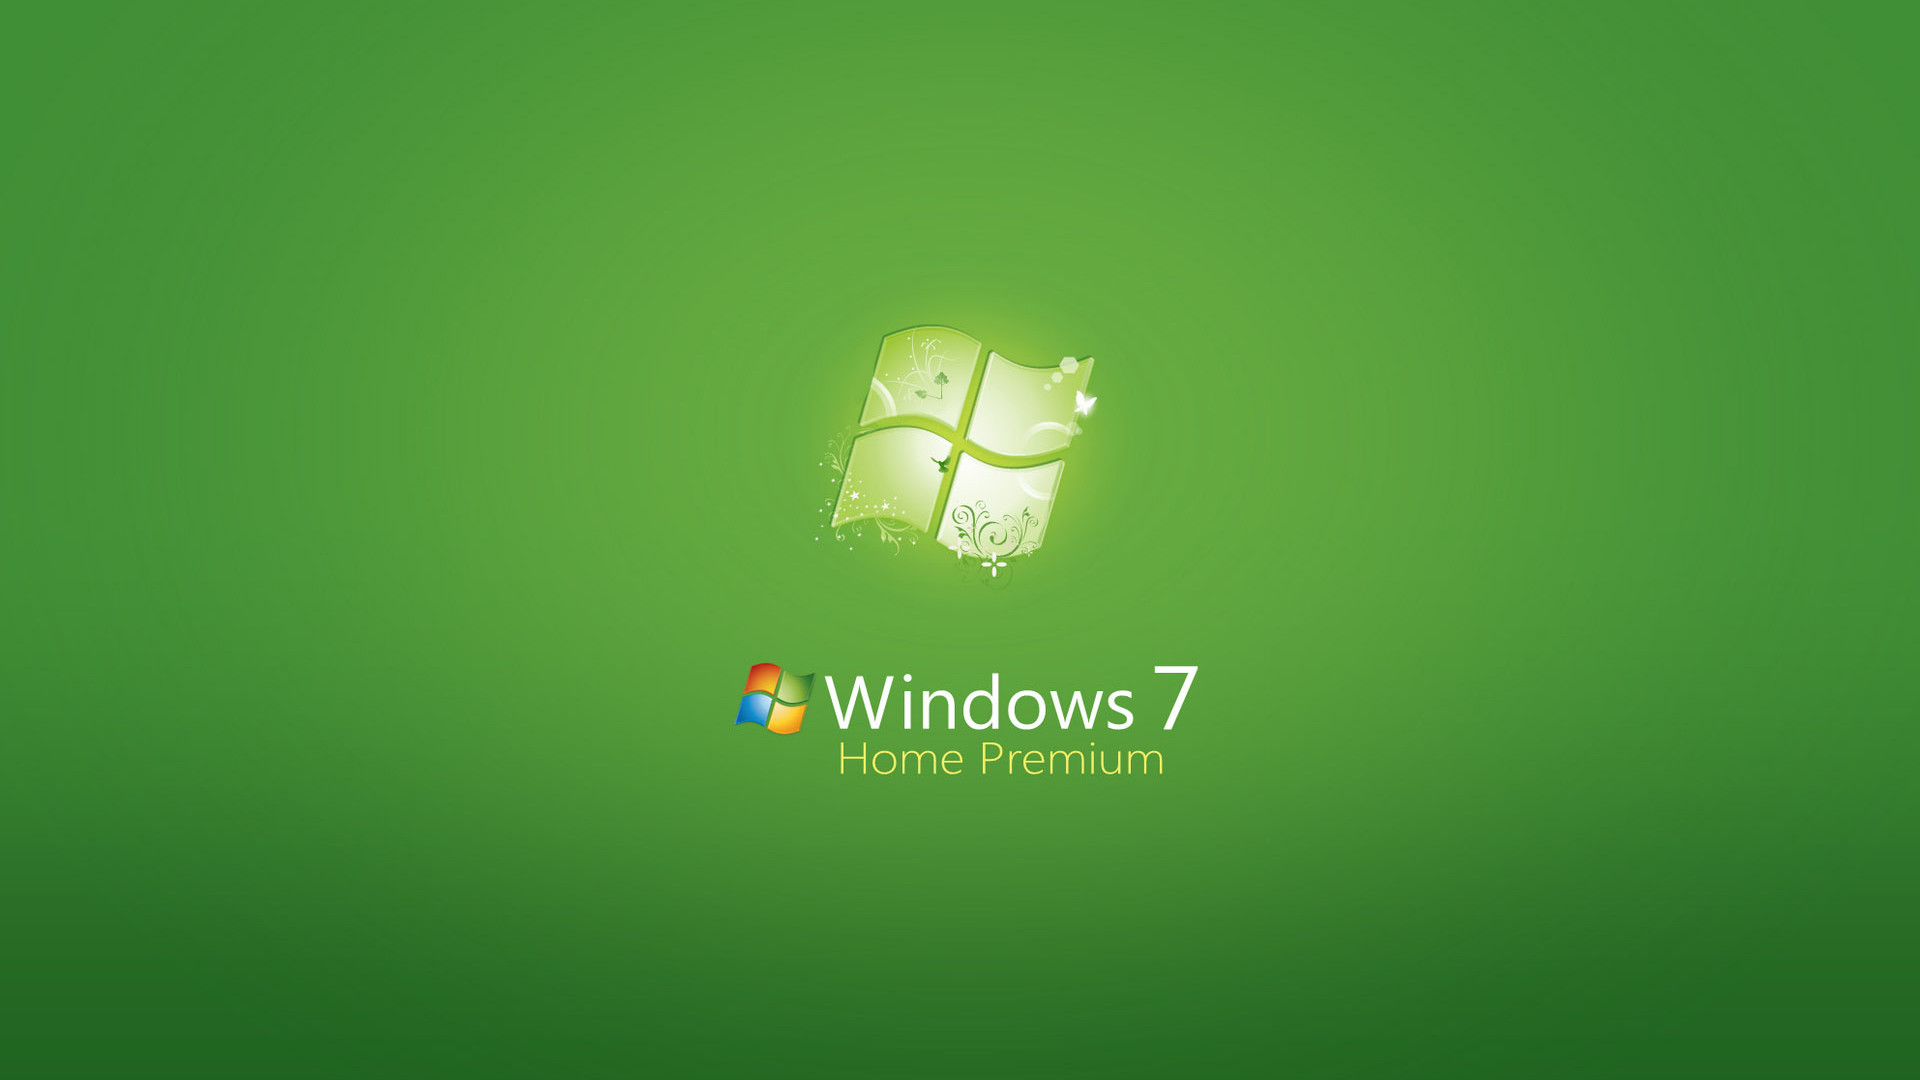 Download Wallpapers For Windows 7 Home Premium